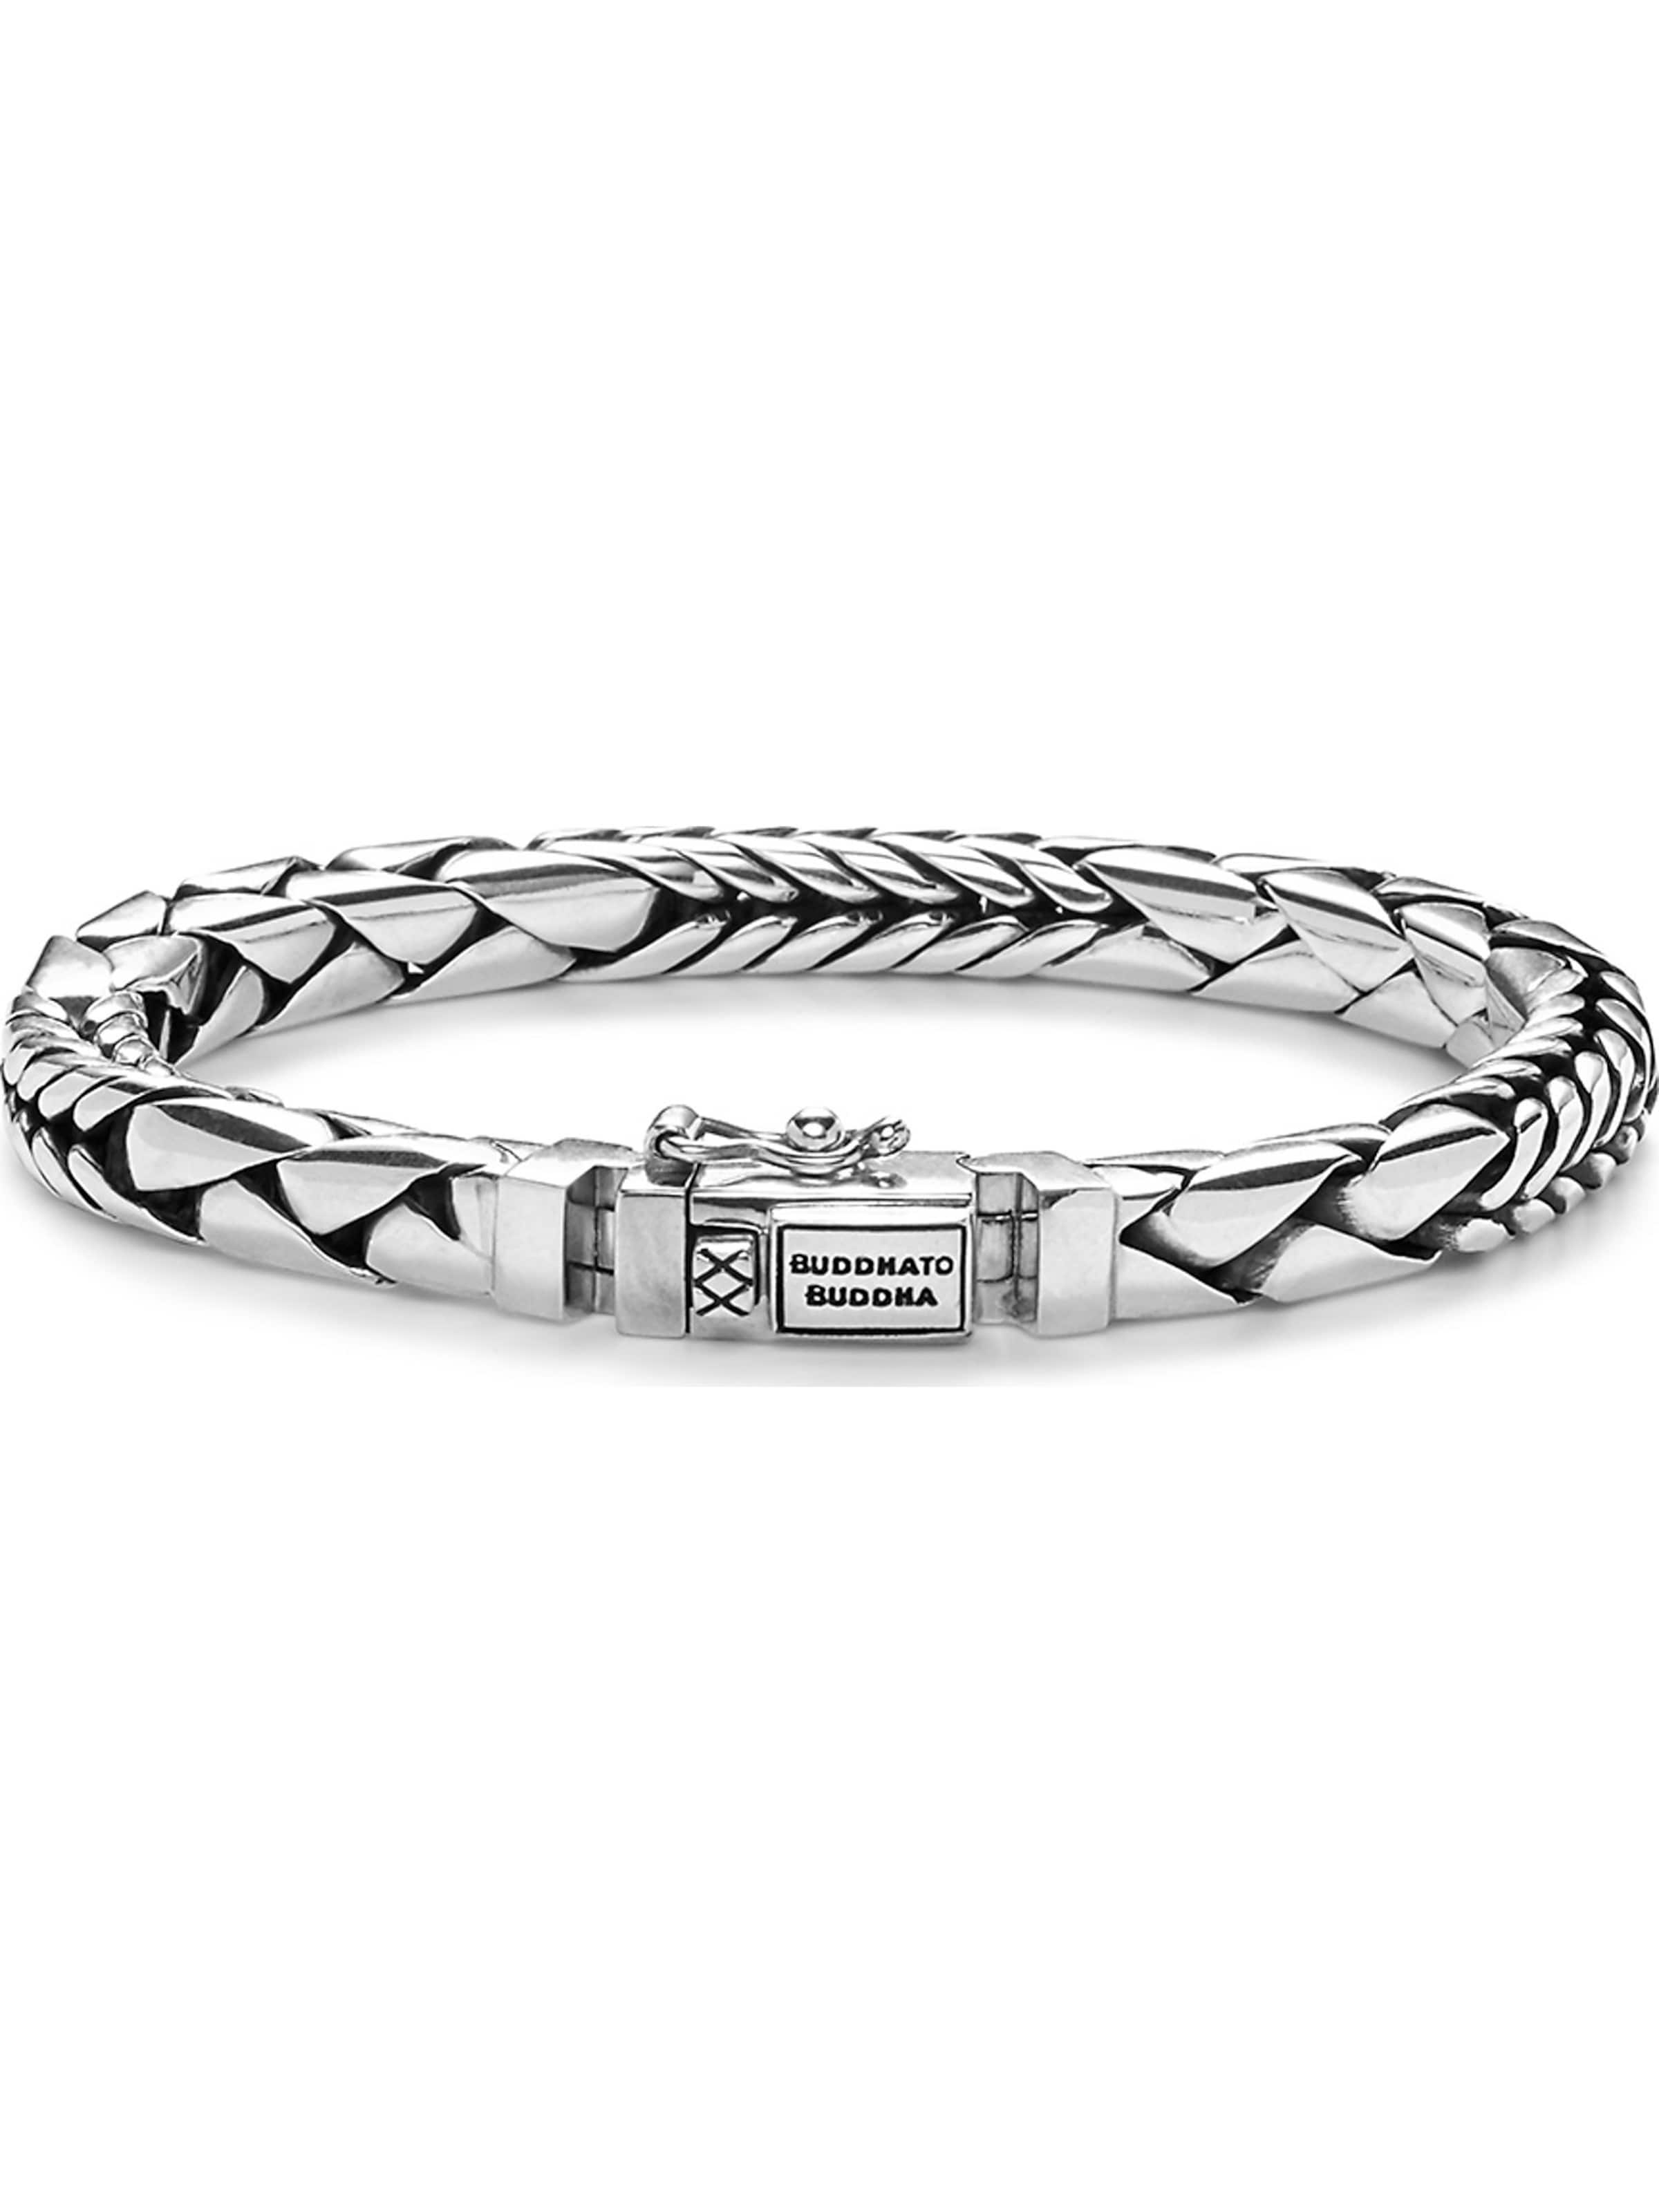 In Armband To Buddha In Silber Armband To Buddha wk08nPXO